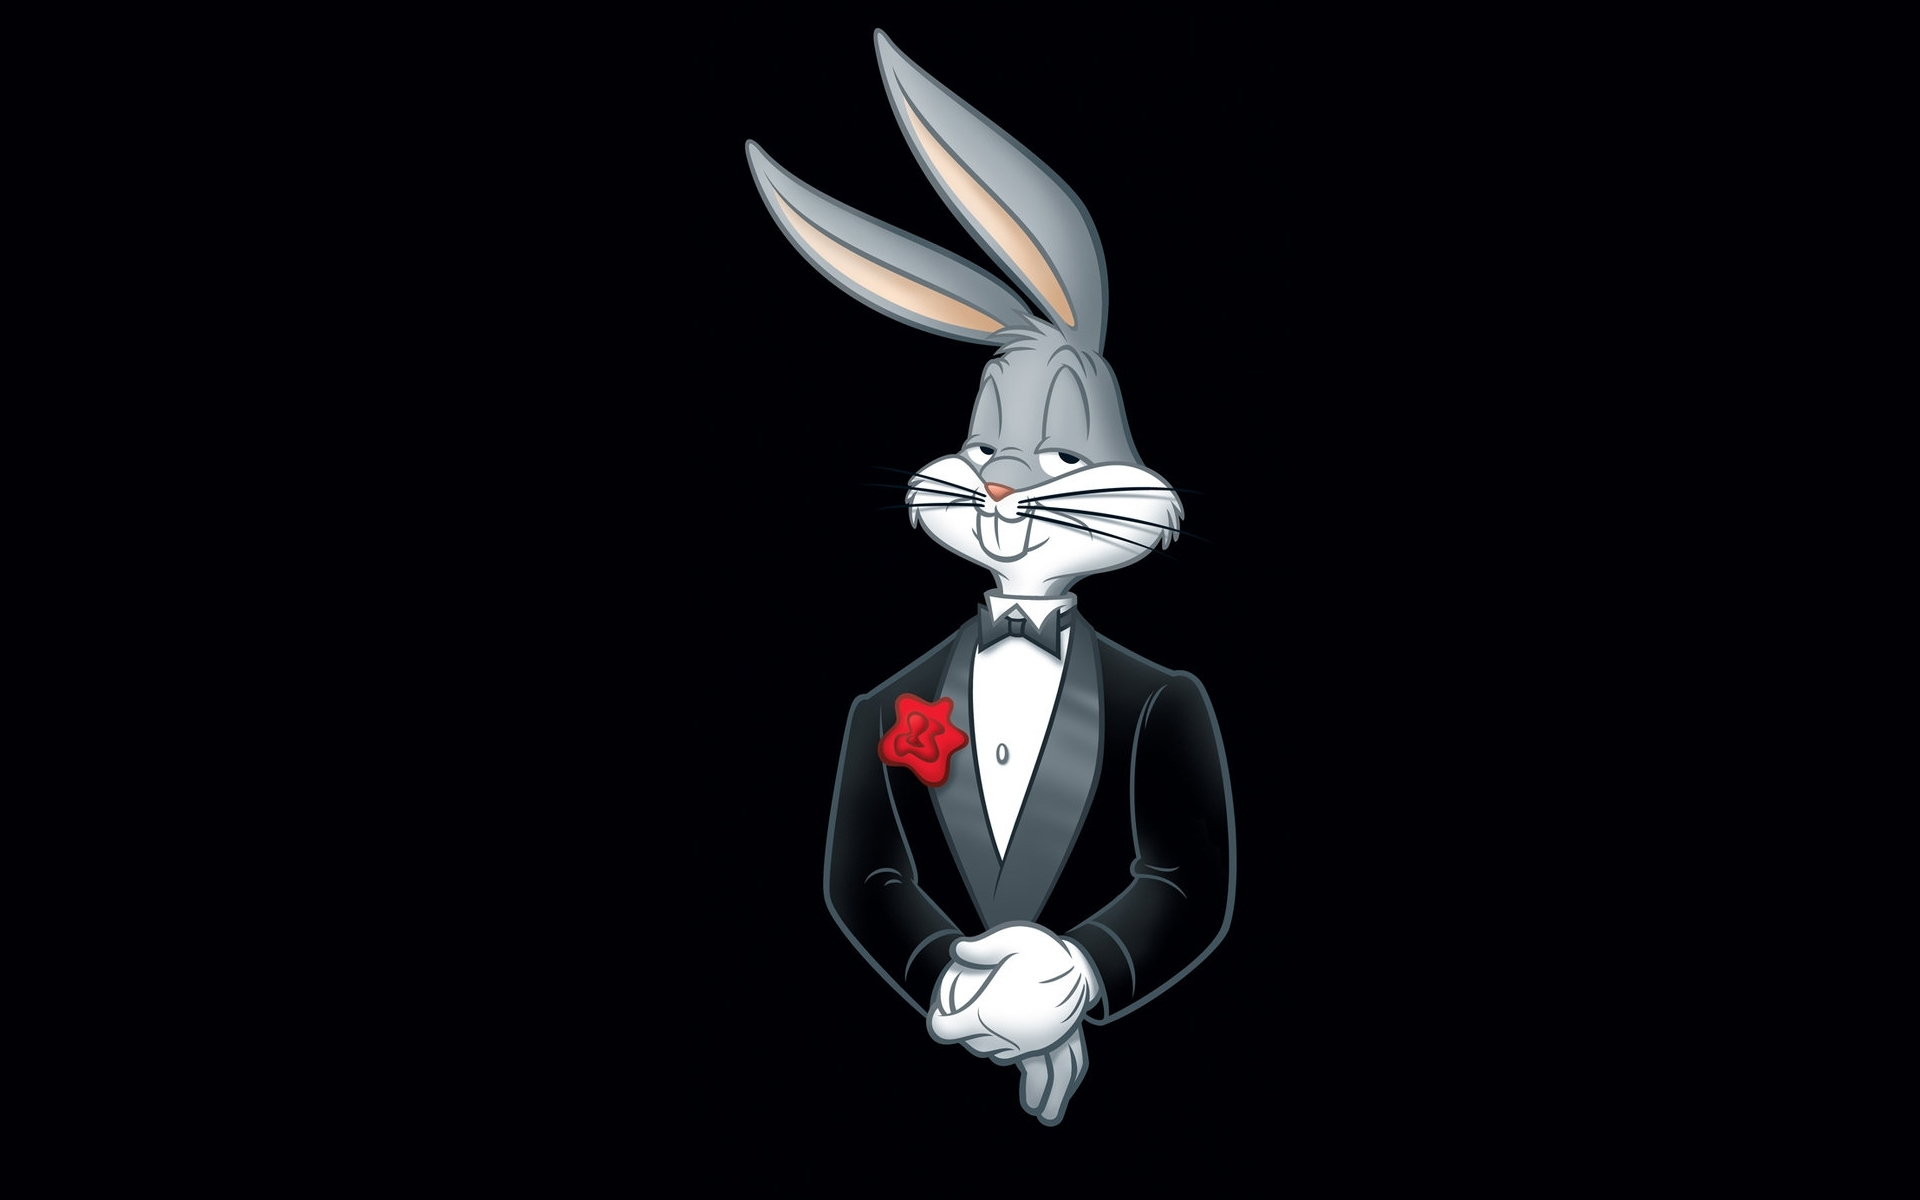 76 Bugs Bunny Wallpaper On Wallpapersafari